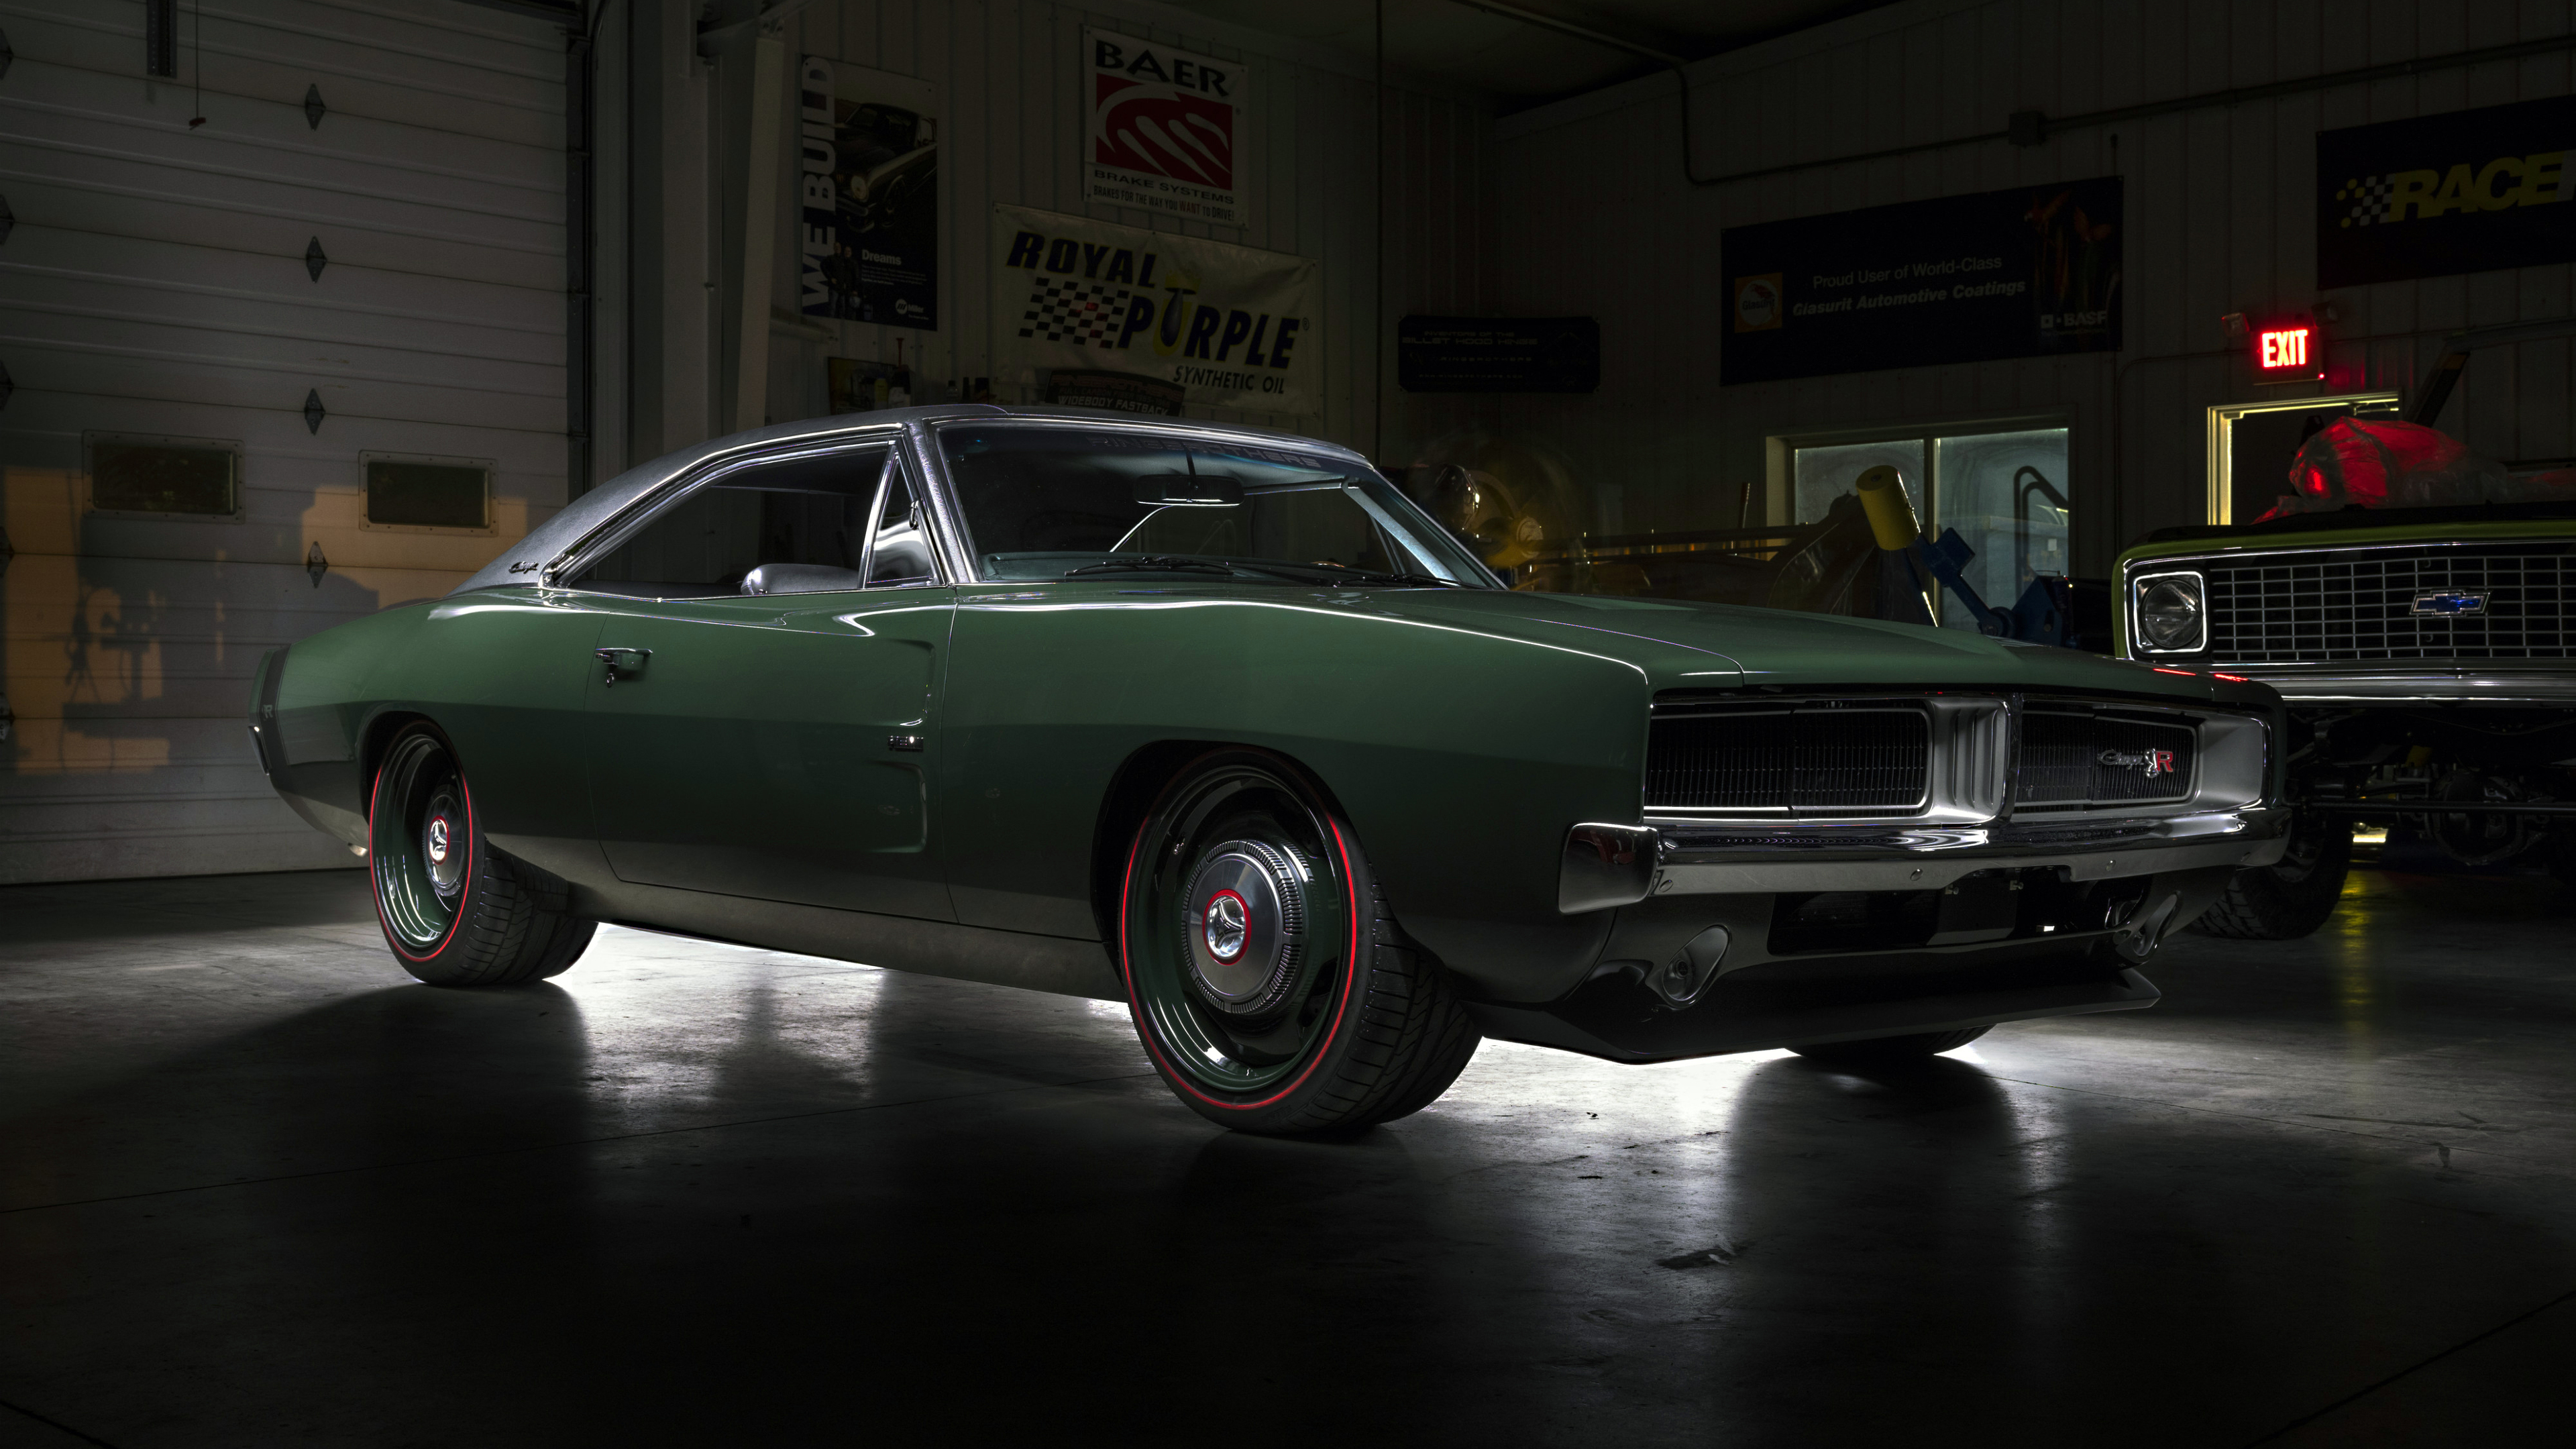 ringbrothers dodge charger defector 1969 1539109171 - Ringbrothers Dodge Charger Defector 1969 - hd-wallpapers, dodge charger wallpapers, cars wallpapers, 4k-wallpapers